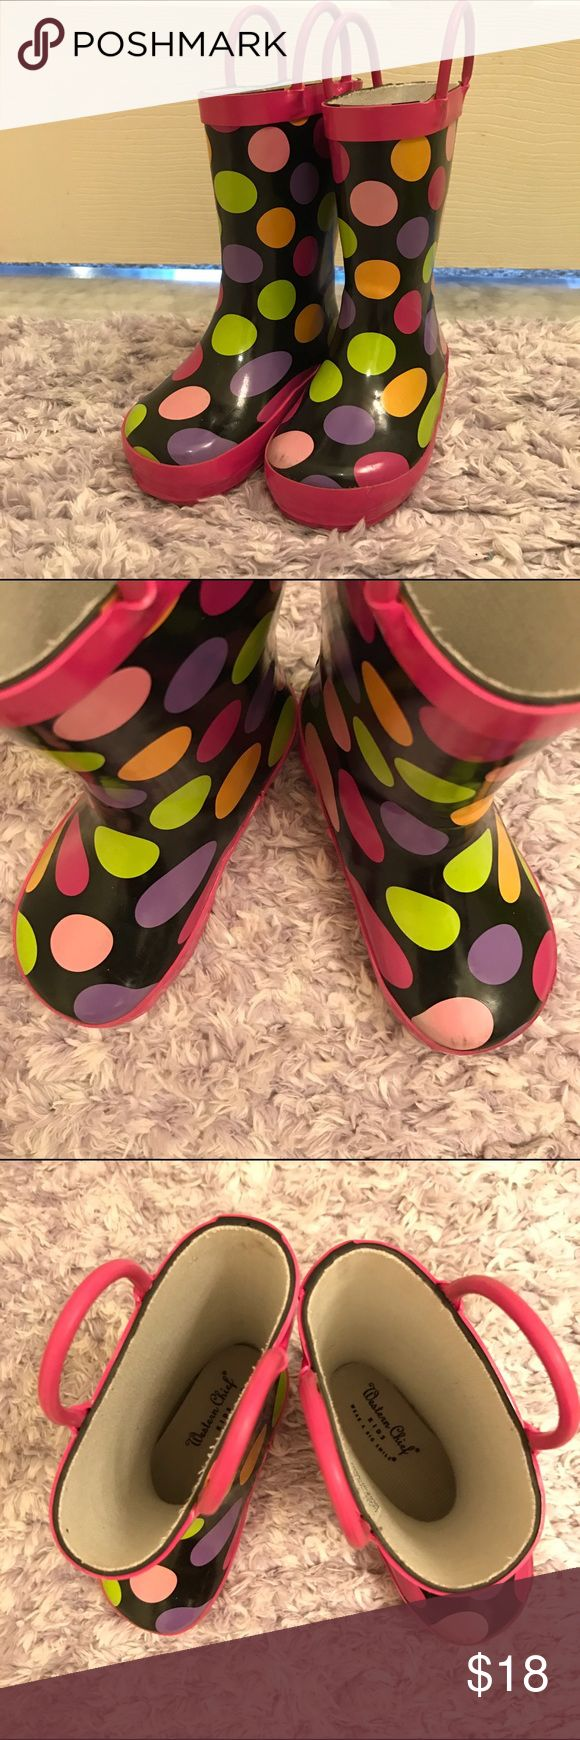 WESTERN CHIEF girls rain boots in size 7/8 WESTERN CHIEF girls rain boots in size 7/8. Show some minor signs of wear, but still in good condition. Western Chief Shoes Rain & Snow Boots